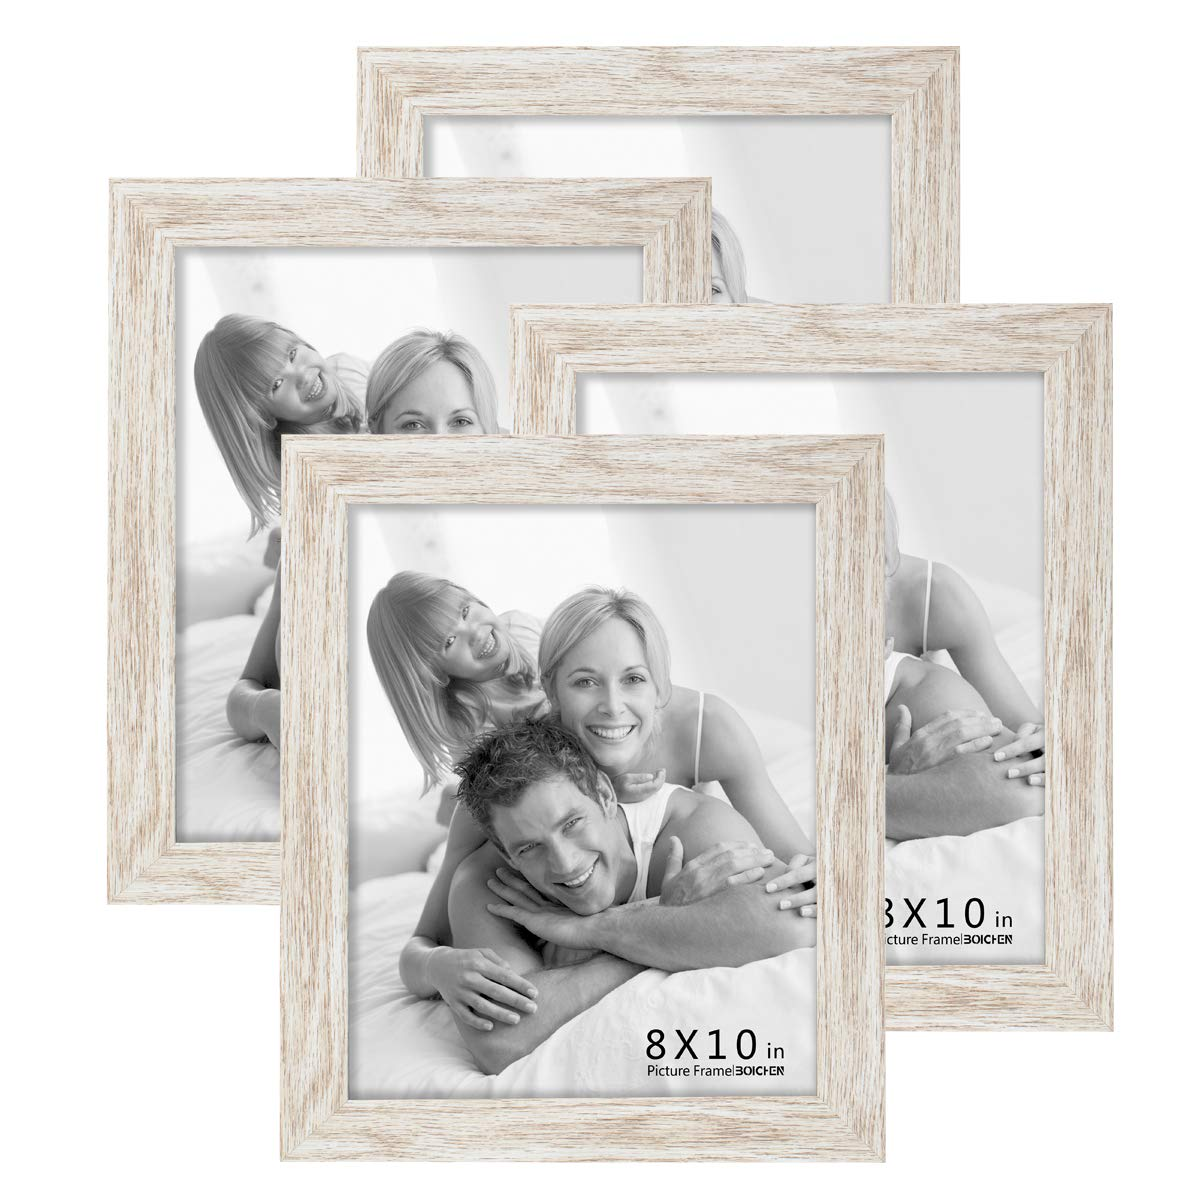 Boichen 4 Pack 8x10 Picture Frame Wood Pattern High Definition Glass Tabletop or Wall,White Woodgrain Photo Frames 8x10 4 Pack by Boichen